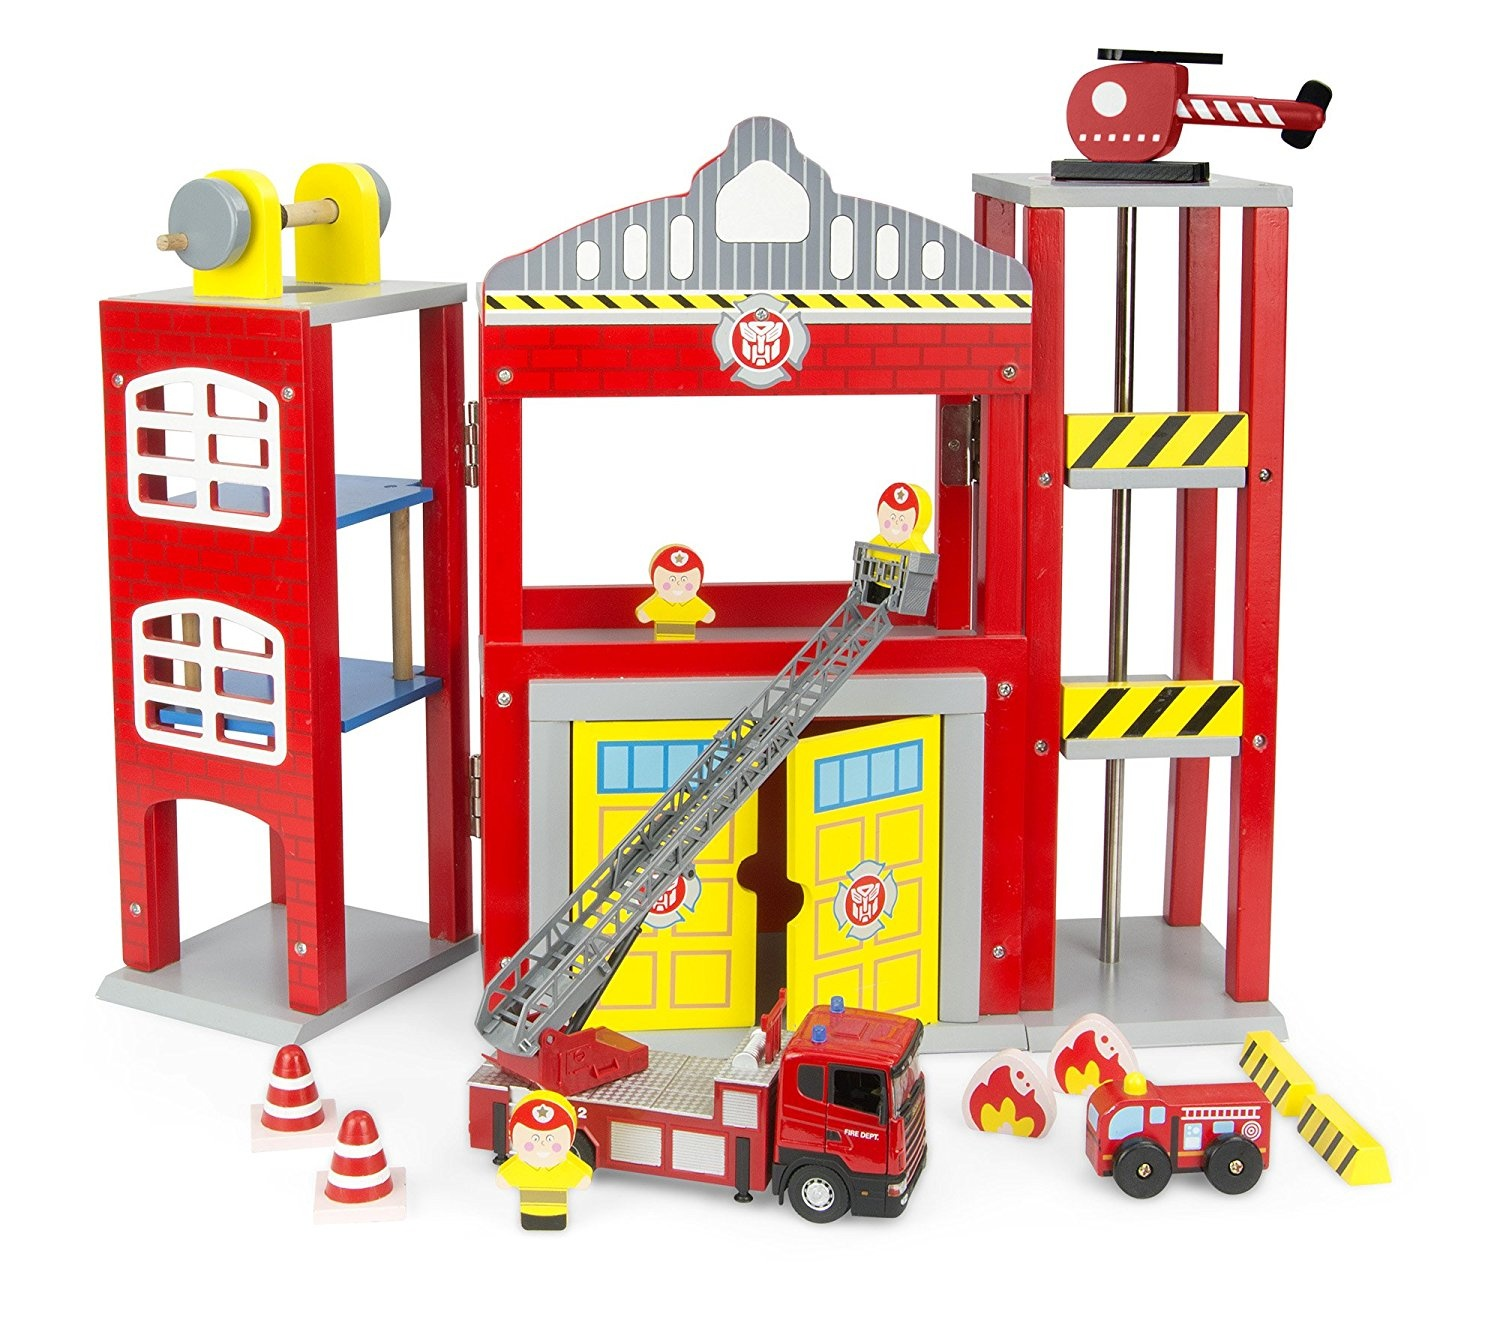 Wooden Fire Station Play Set Fire Engine Accessories Wooden Firefighters Helicopter Moving Rotary Elevator